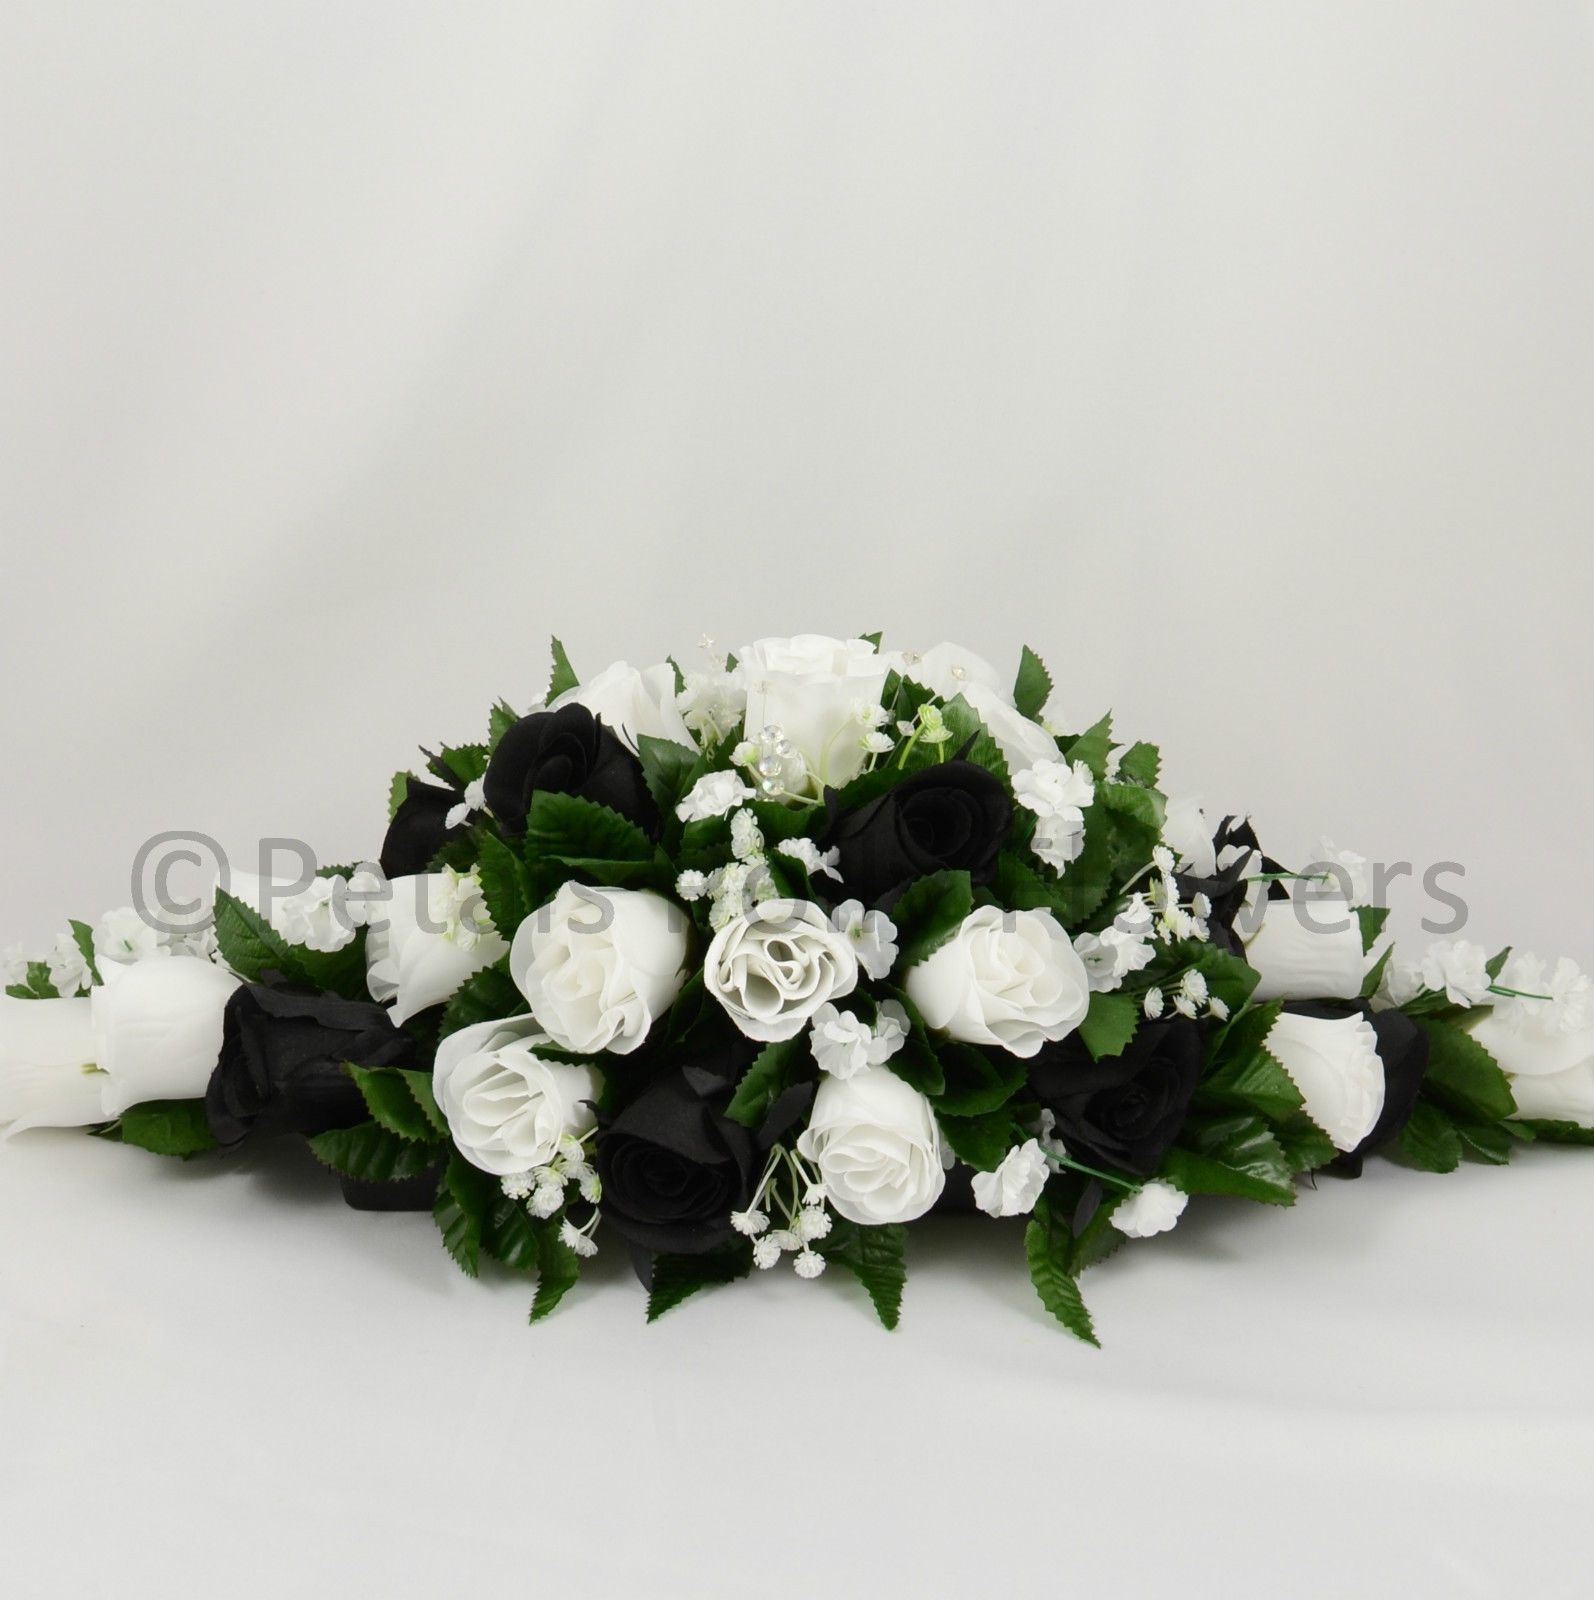 Silk Wedding Flowers by Petals Polly, TOP TABLE DECORATION in BLACK ...